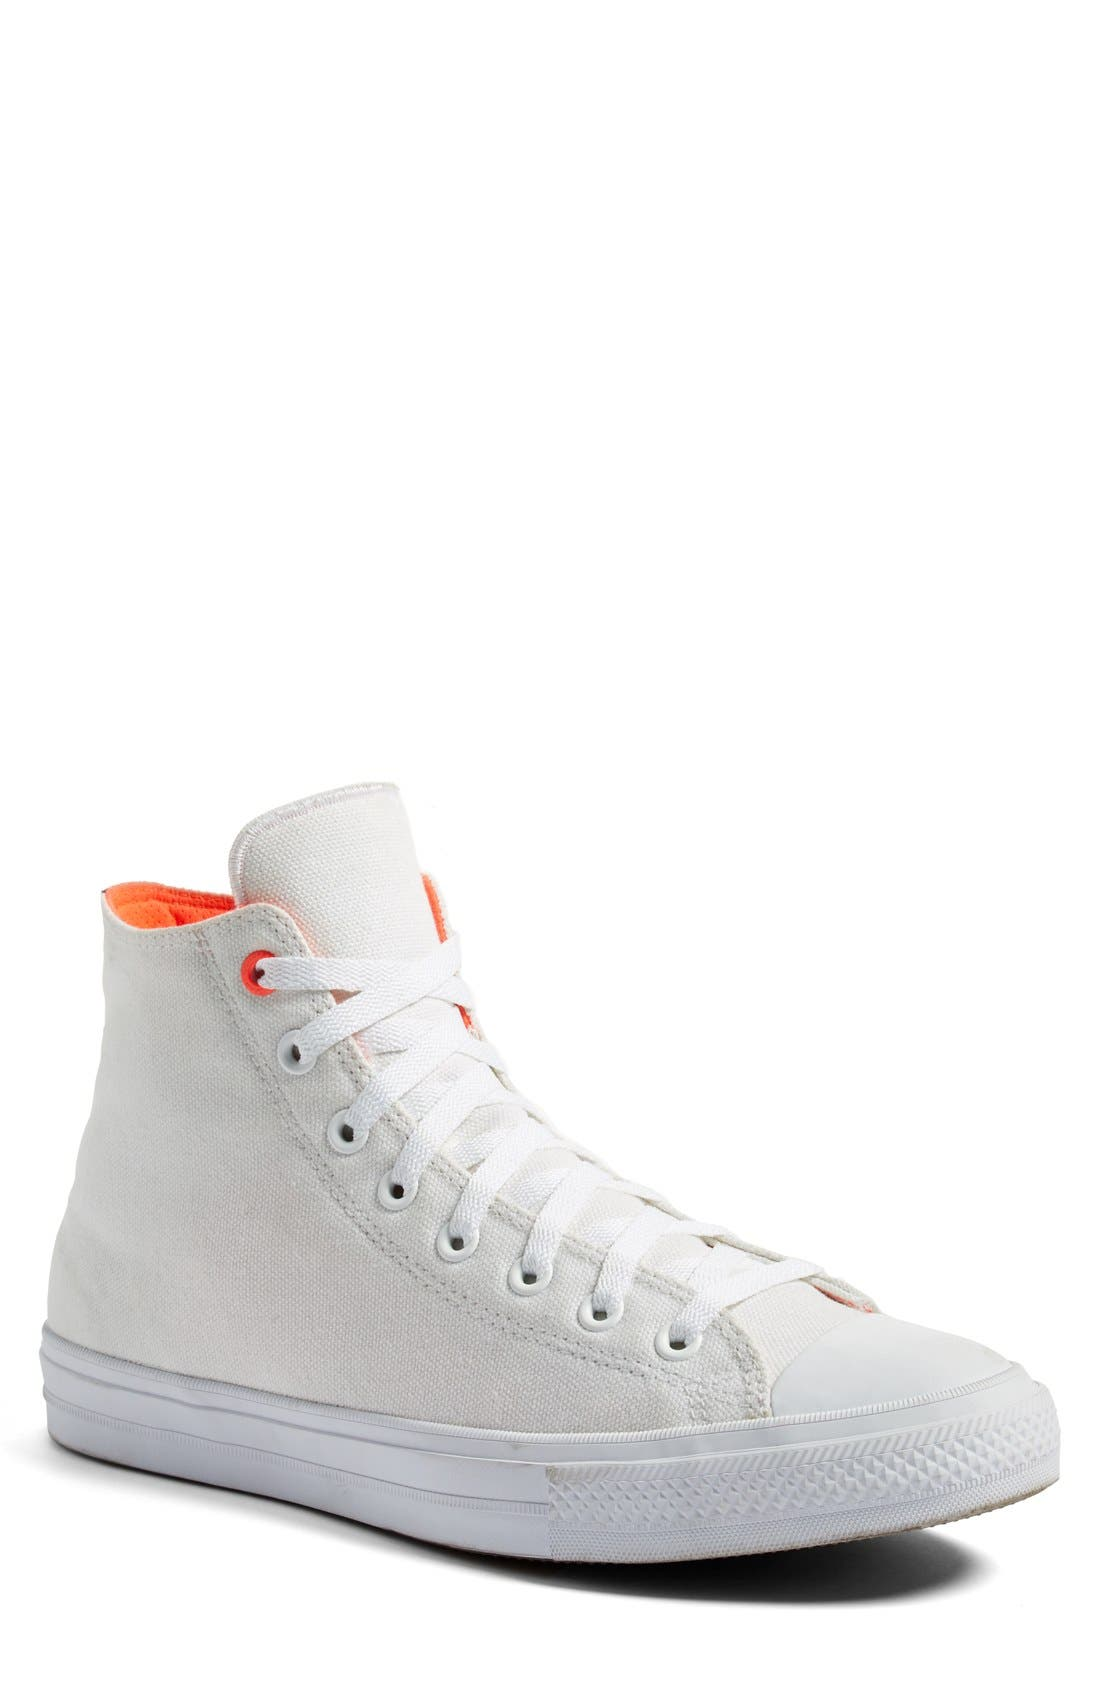 Alternate Image 1 Selected - Converse Chuck Taylor® All Star® II 'Shield' Water Repellent High Top Sneaker (Men)